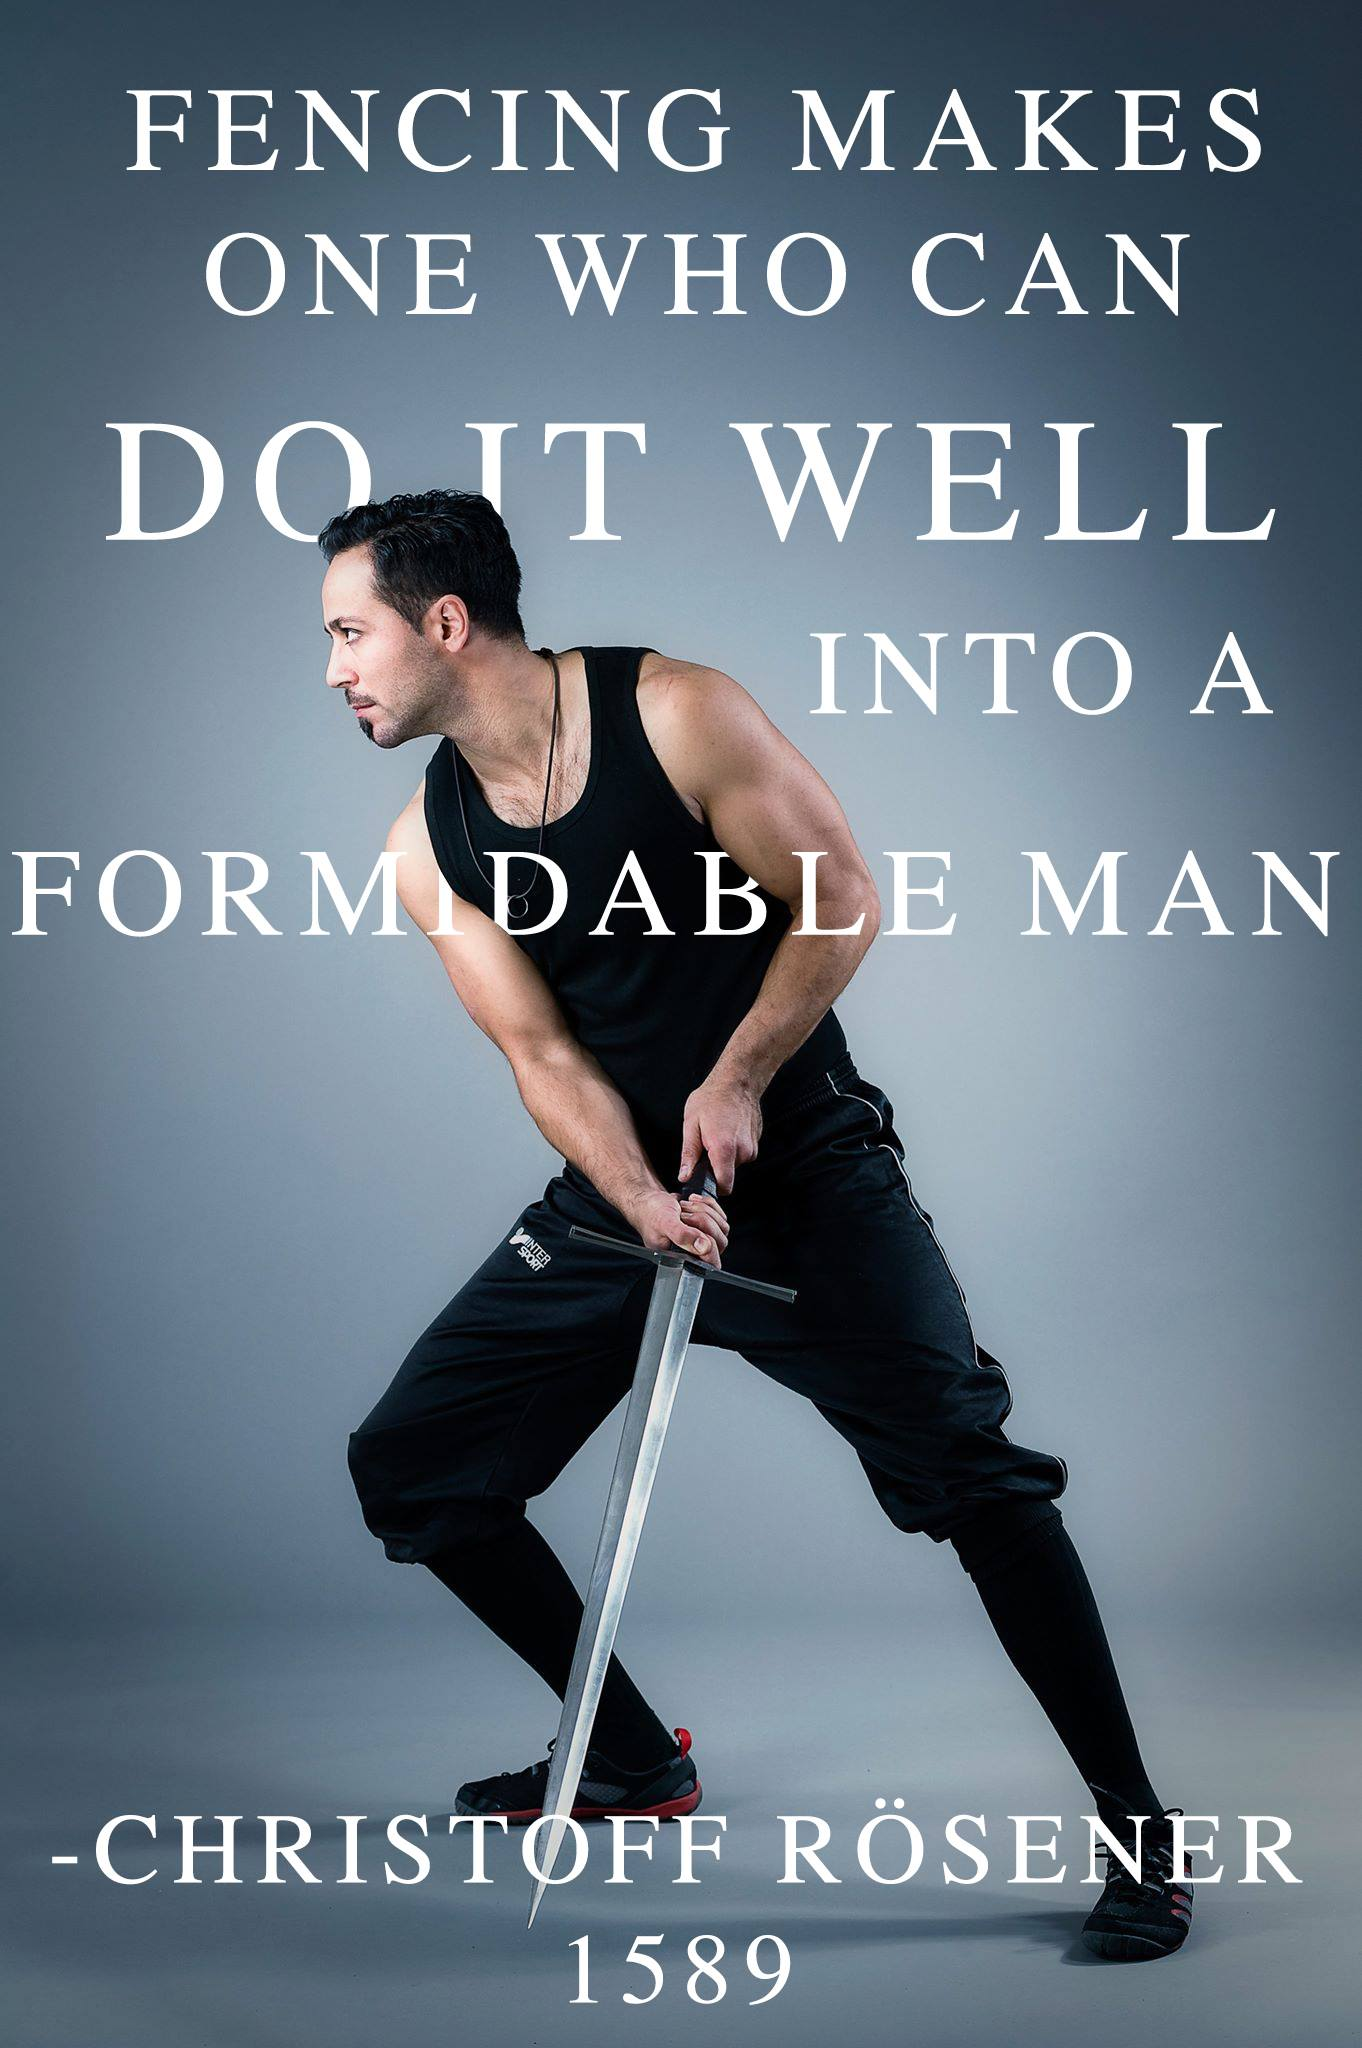 Fencing makes one who can do it well into a formidable man.